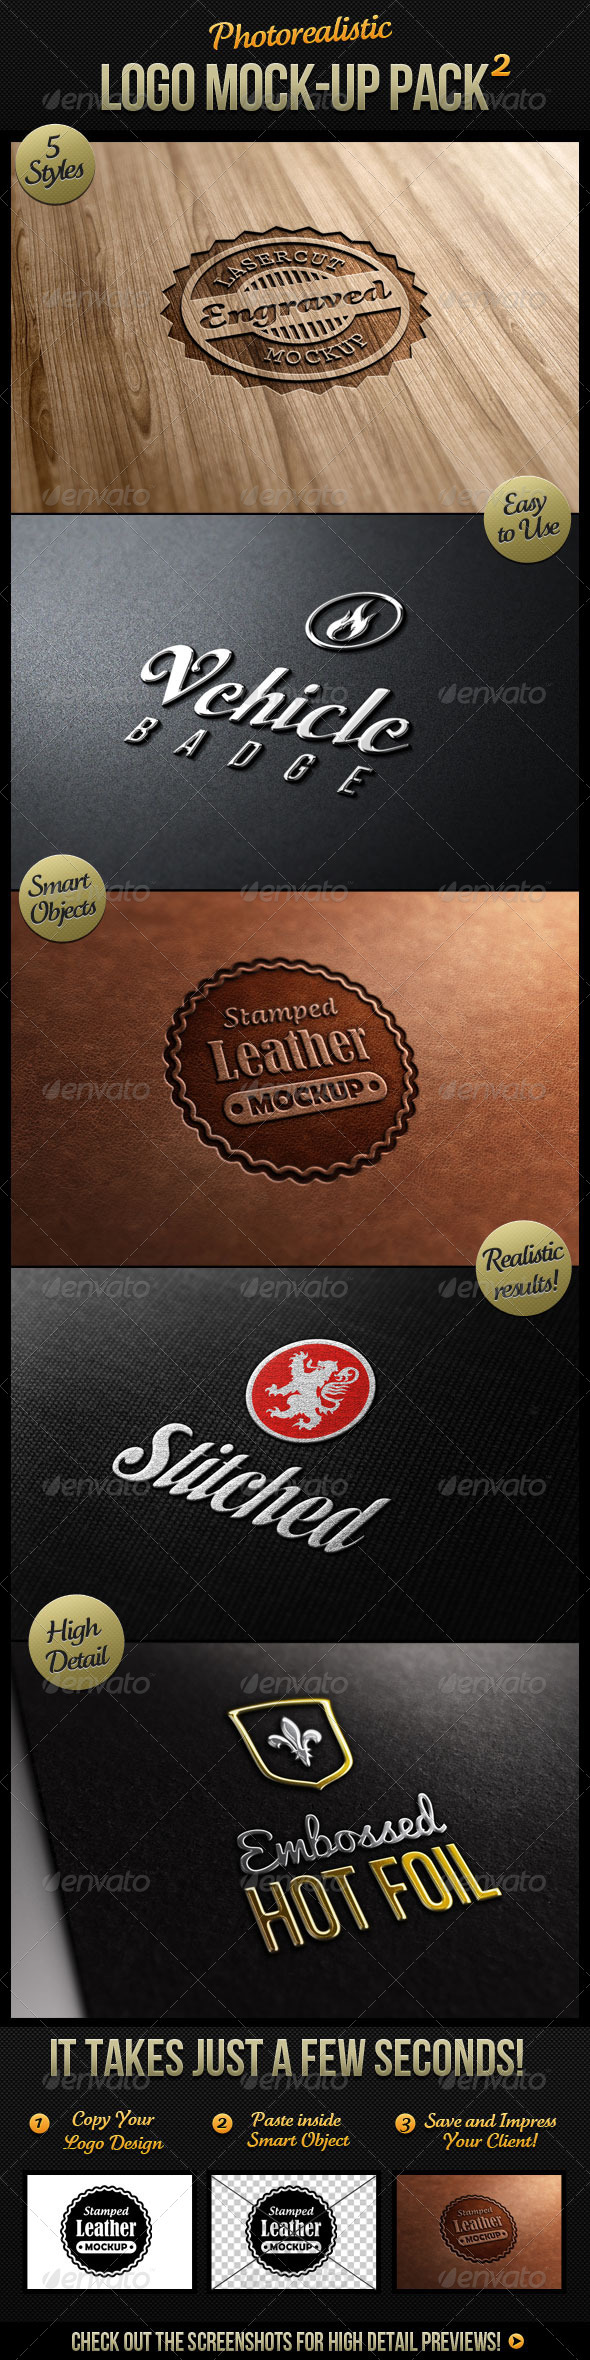 1108 10 Premium Realistic Logo Mock Up Downloads